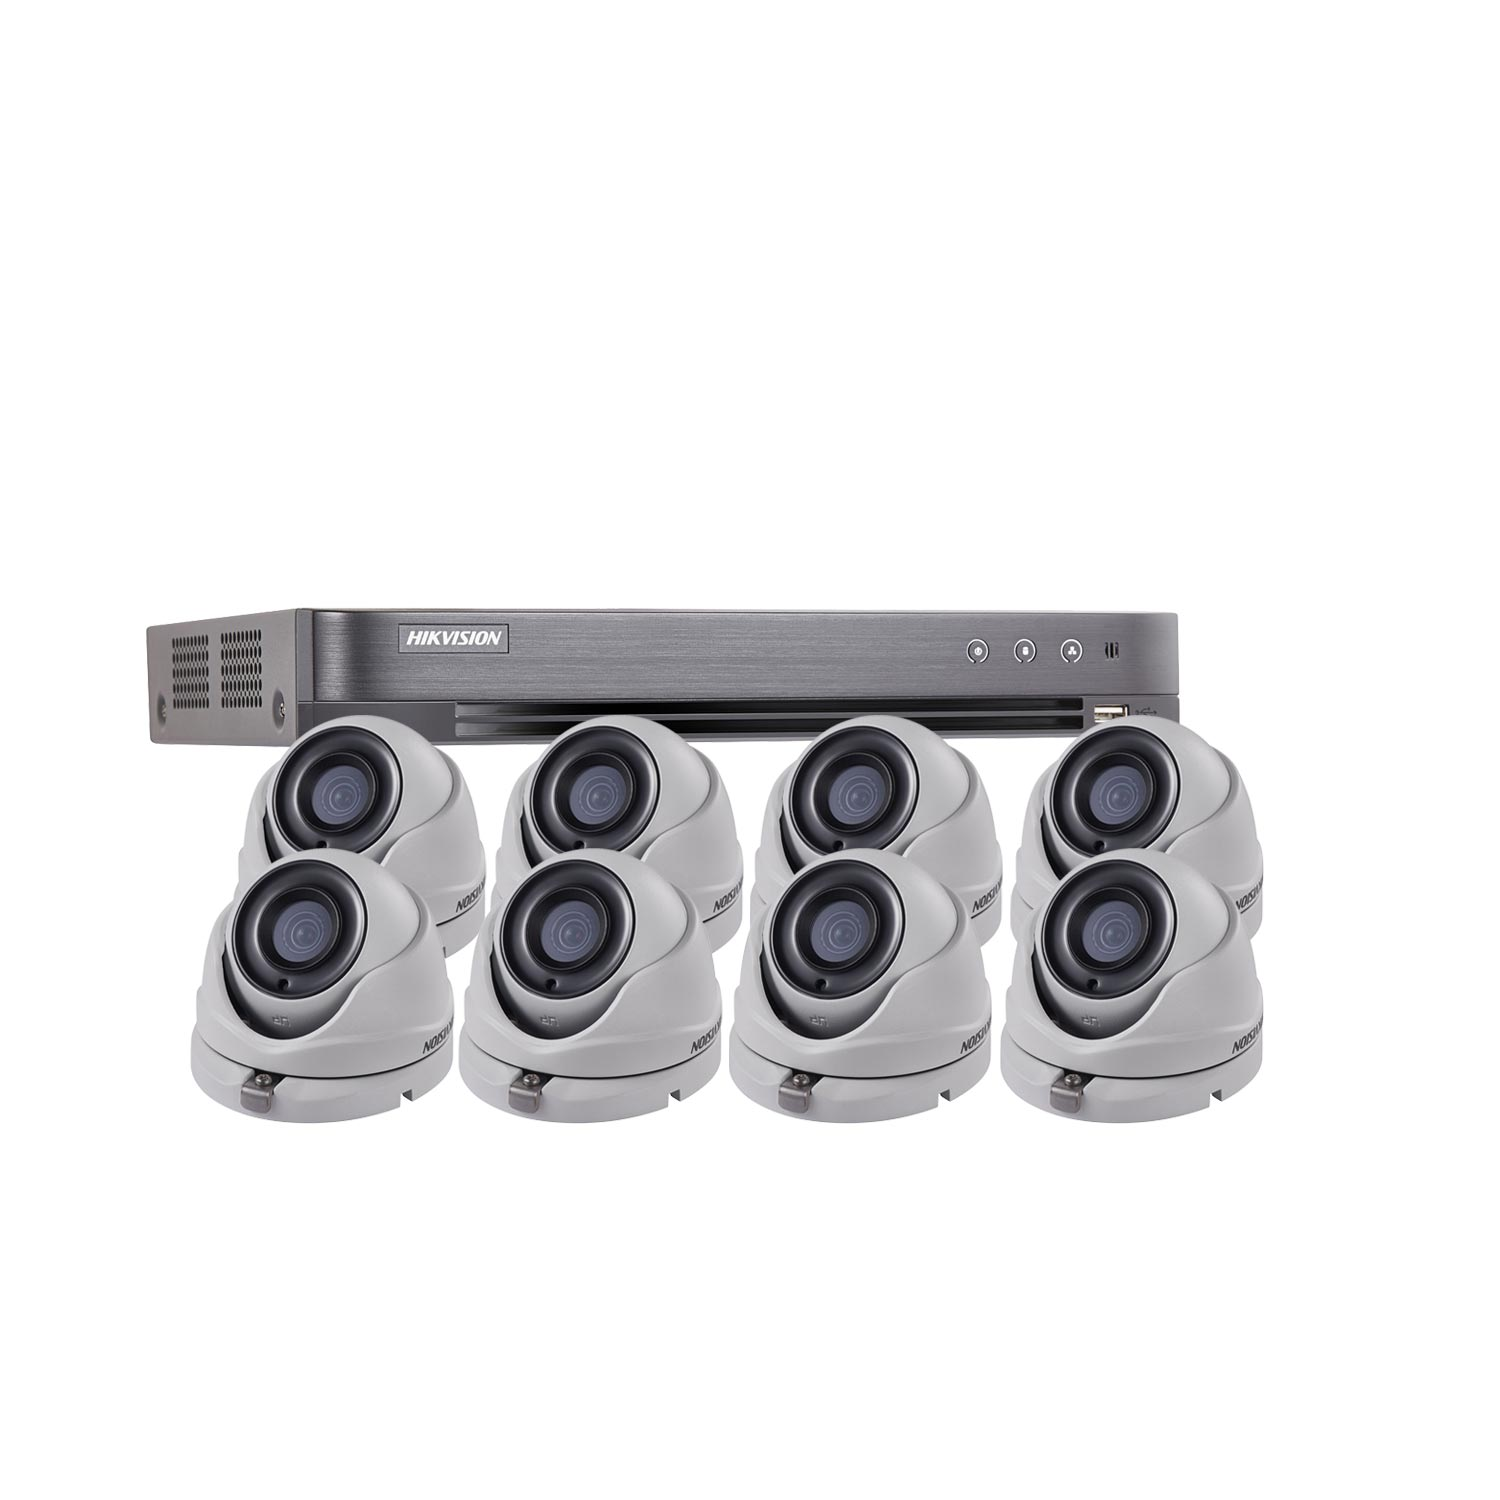 1080P Ultra Low Light Hikvision 8Ch Kit with 8 x Wide Angle